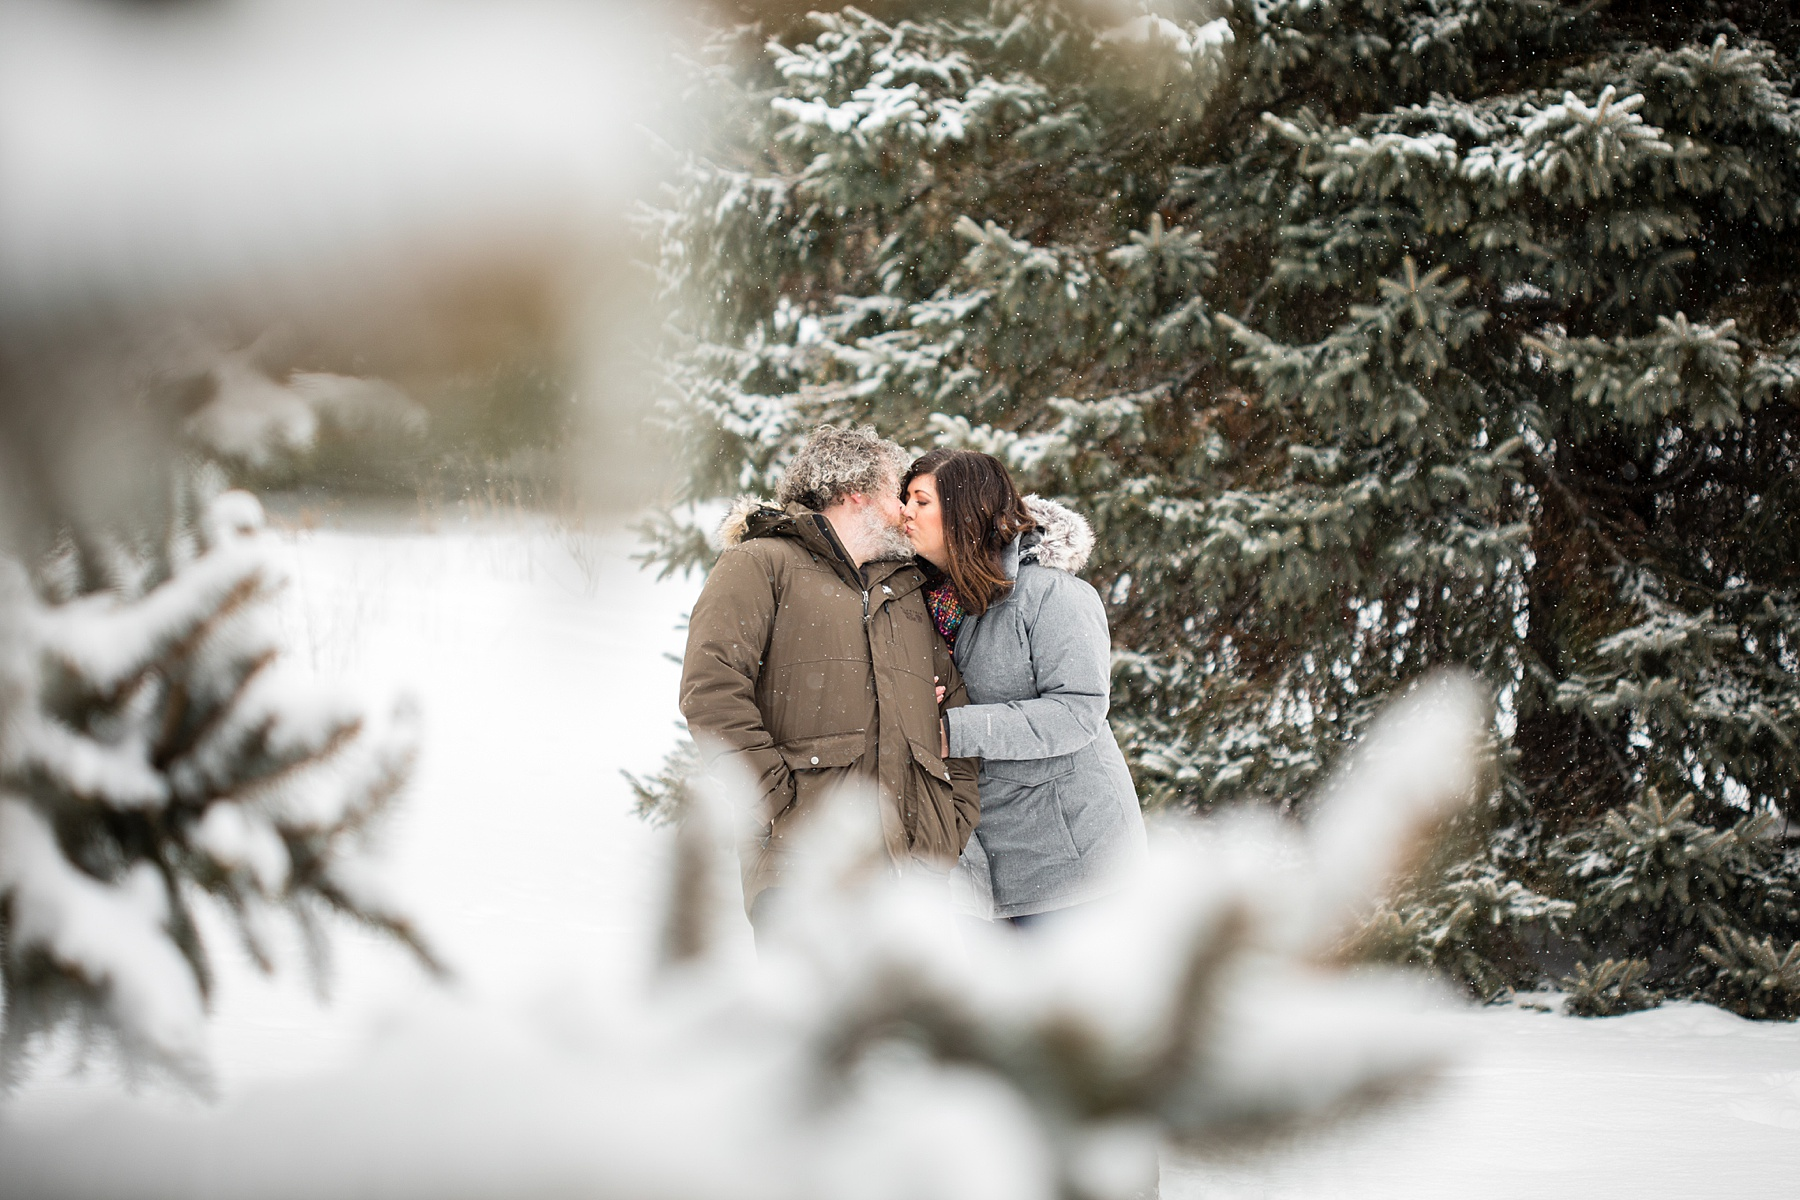 Brandon_Shafer_Photography_Winter_Engagement015.JPG